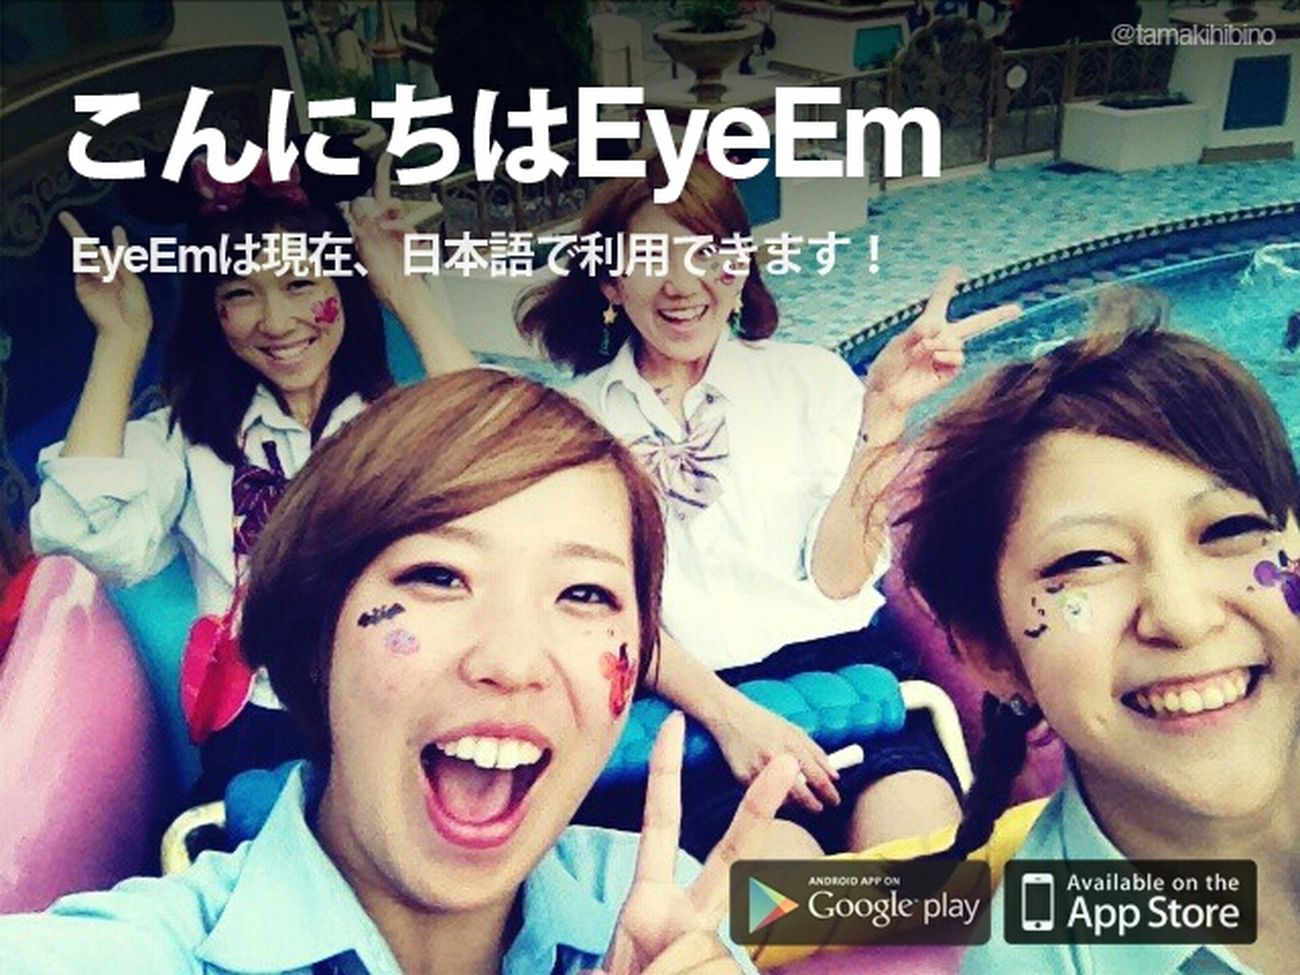 EyeEm is now